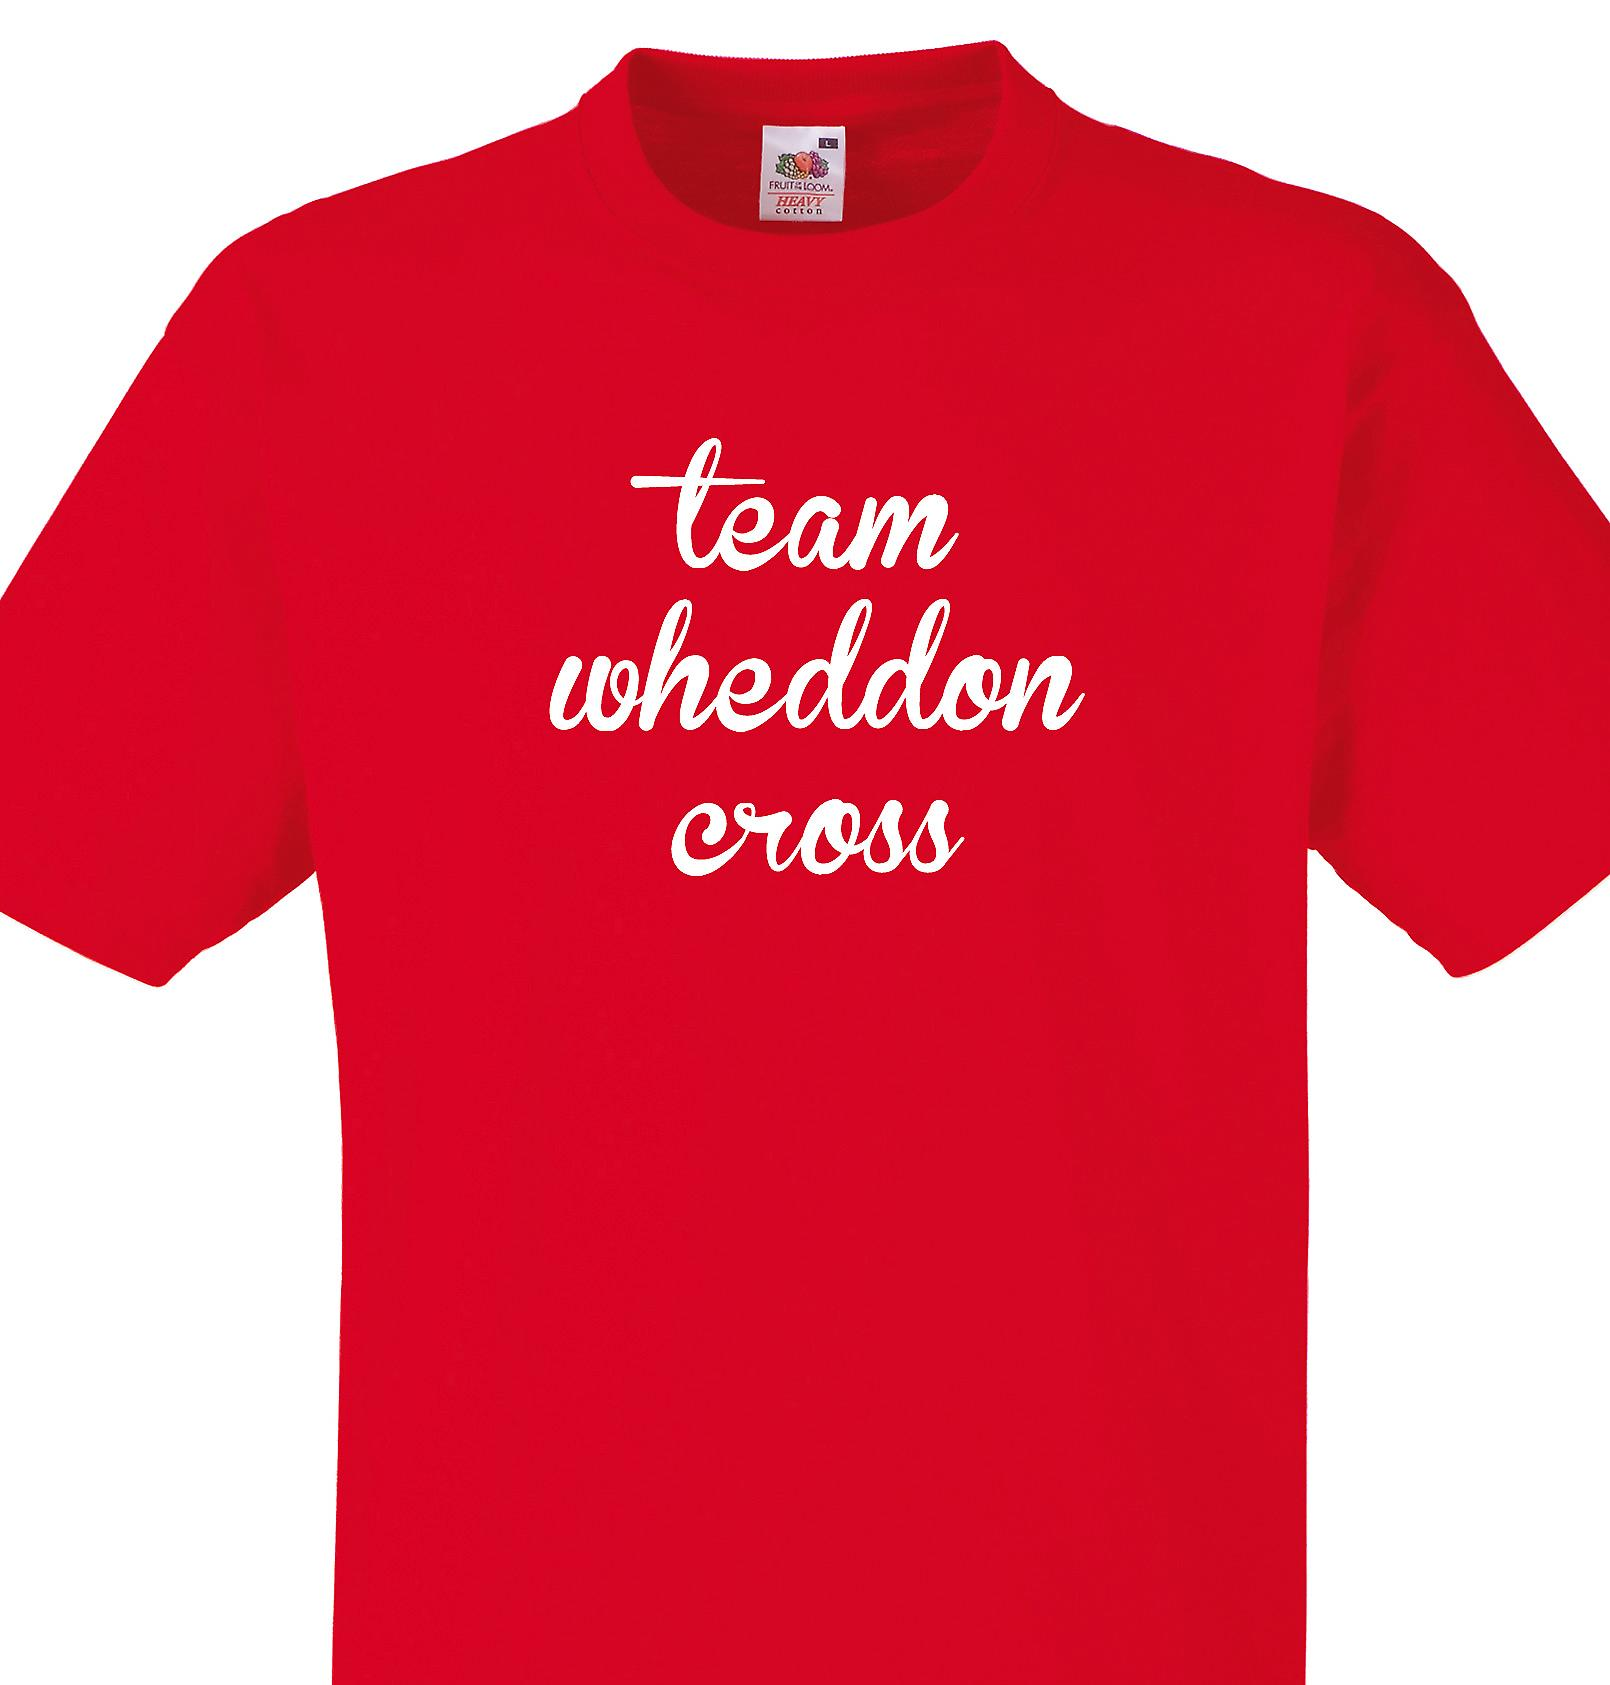 Team Wheddon cross Red T shirt